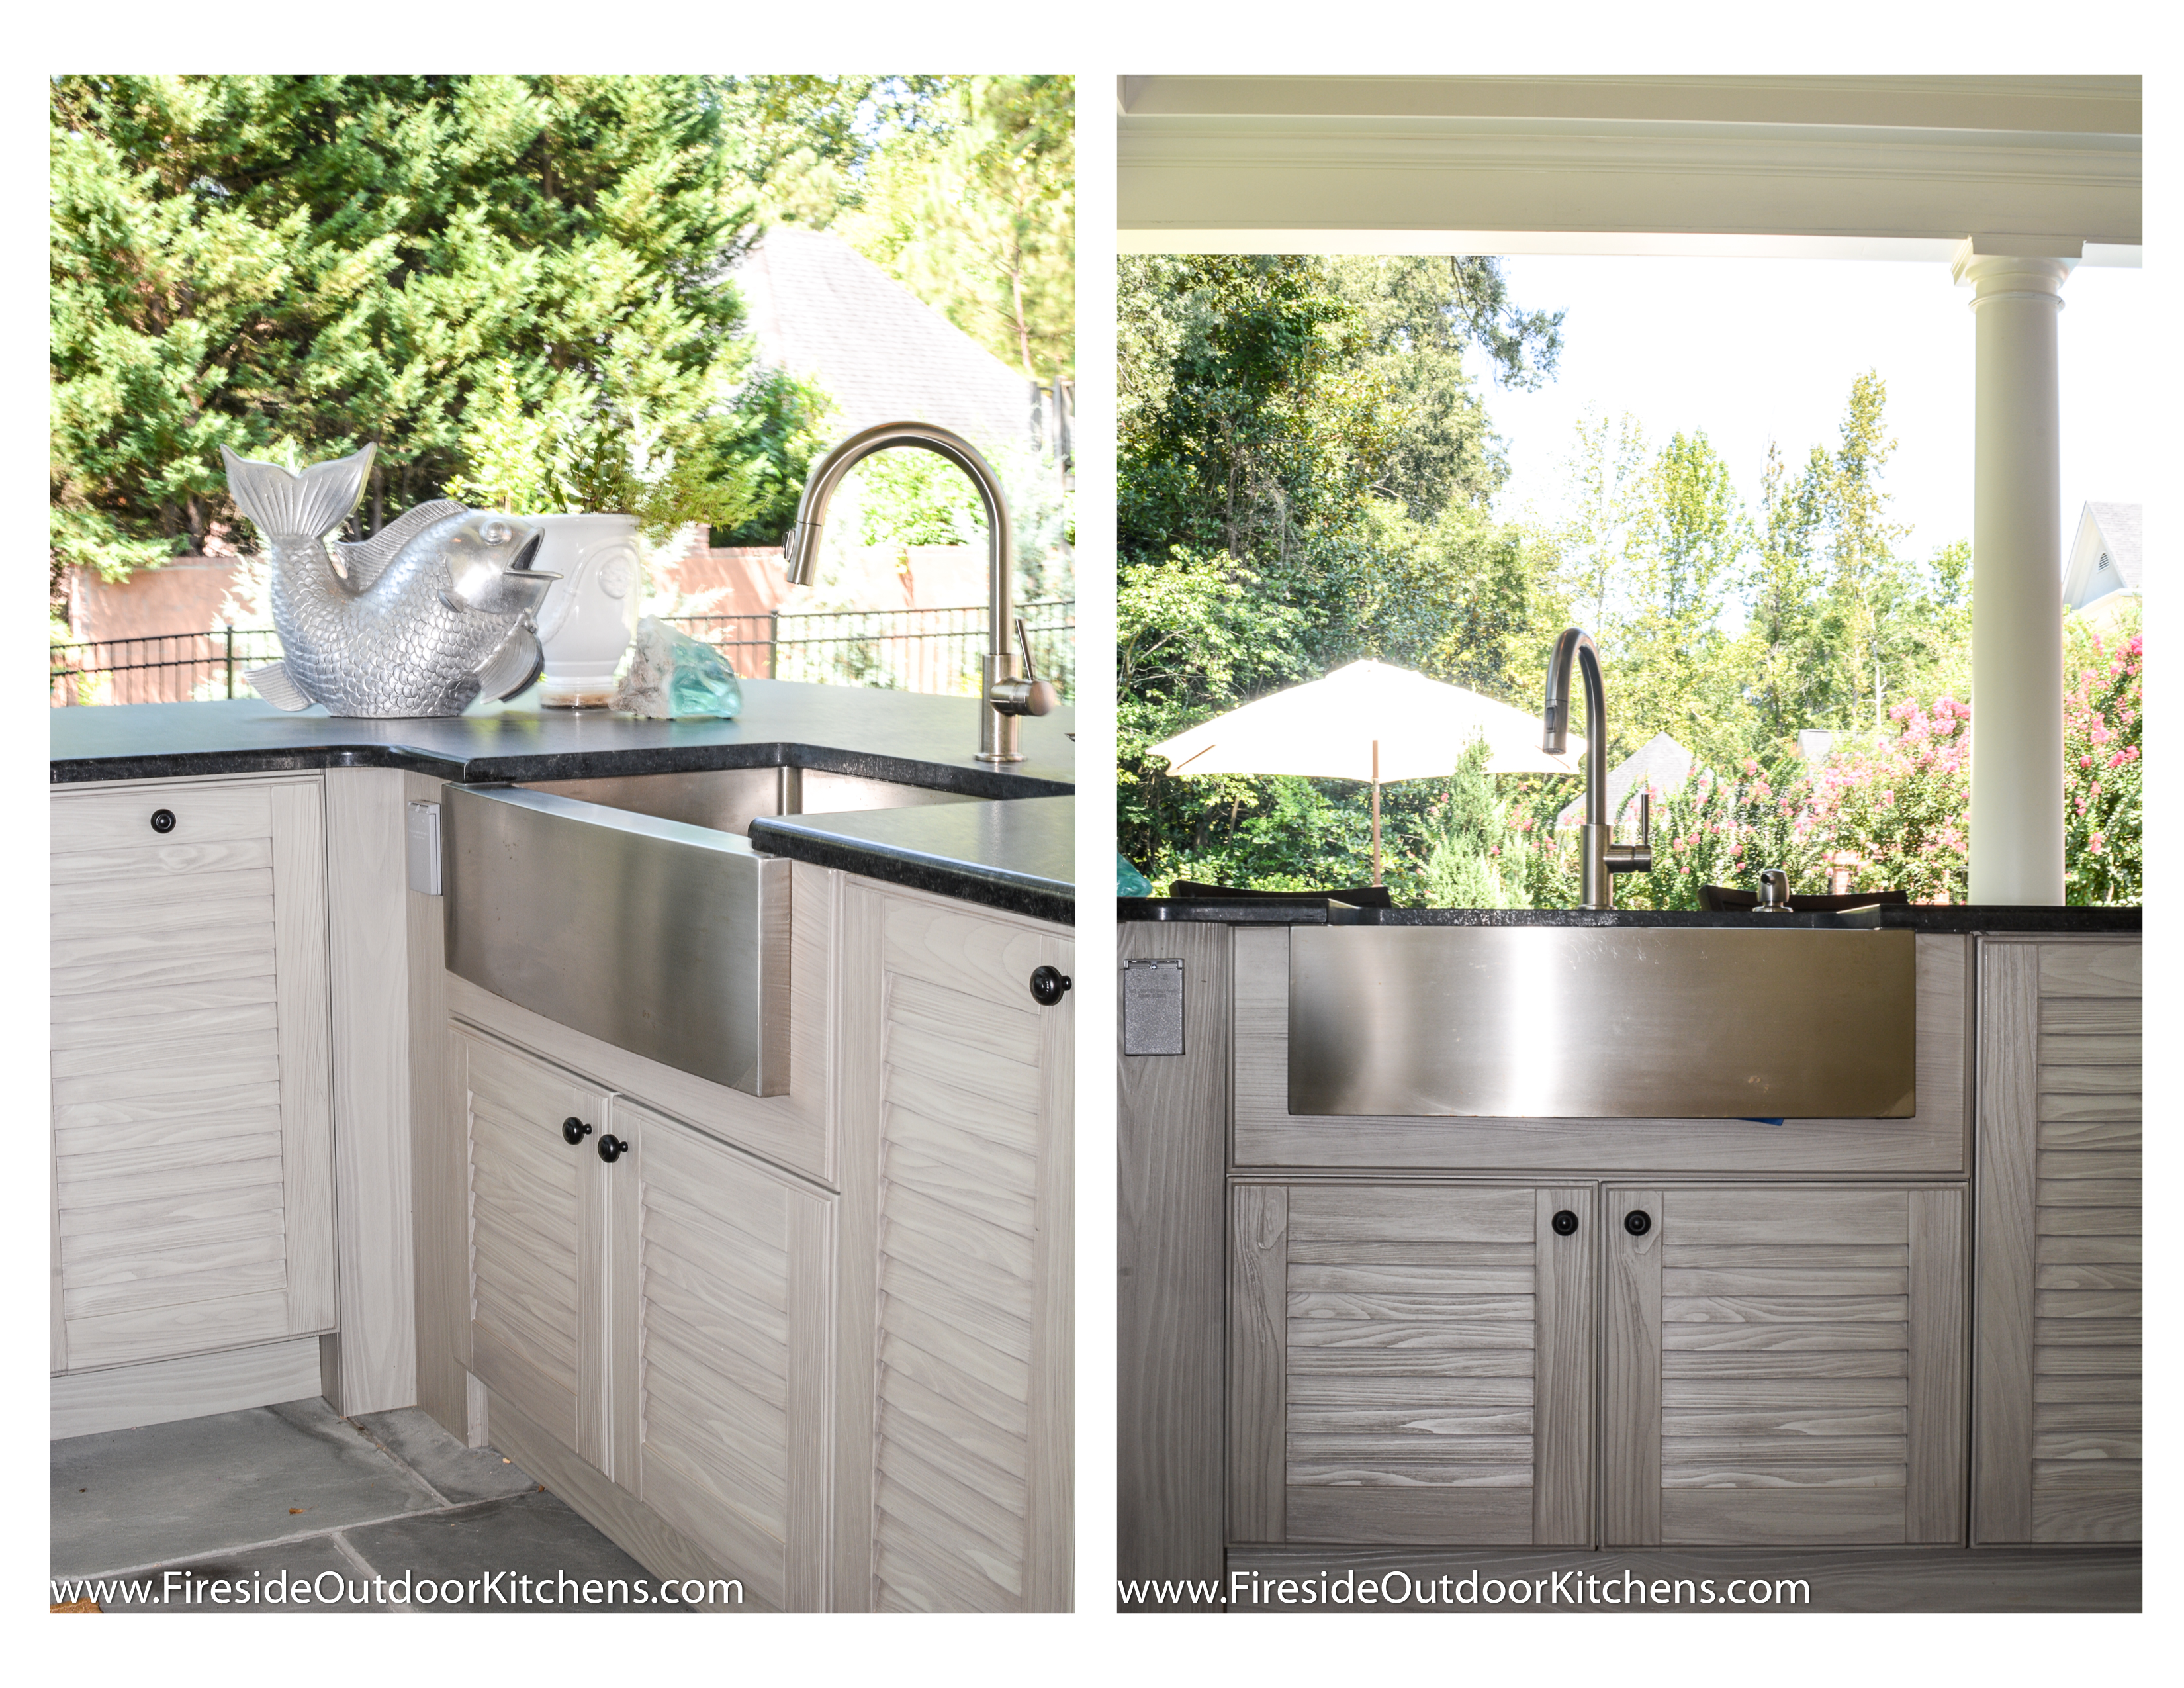 Fireside outdoor kitchen spotlight the gathering spot for Small outdoor kitchen sink